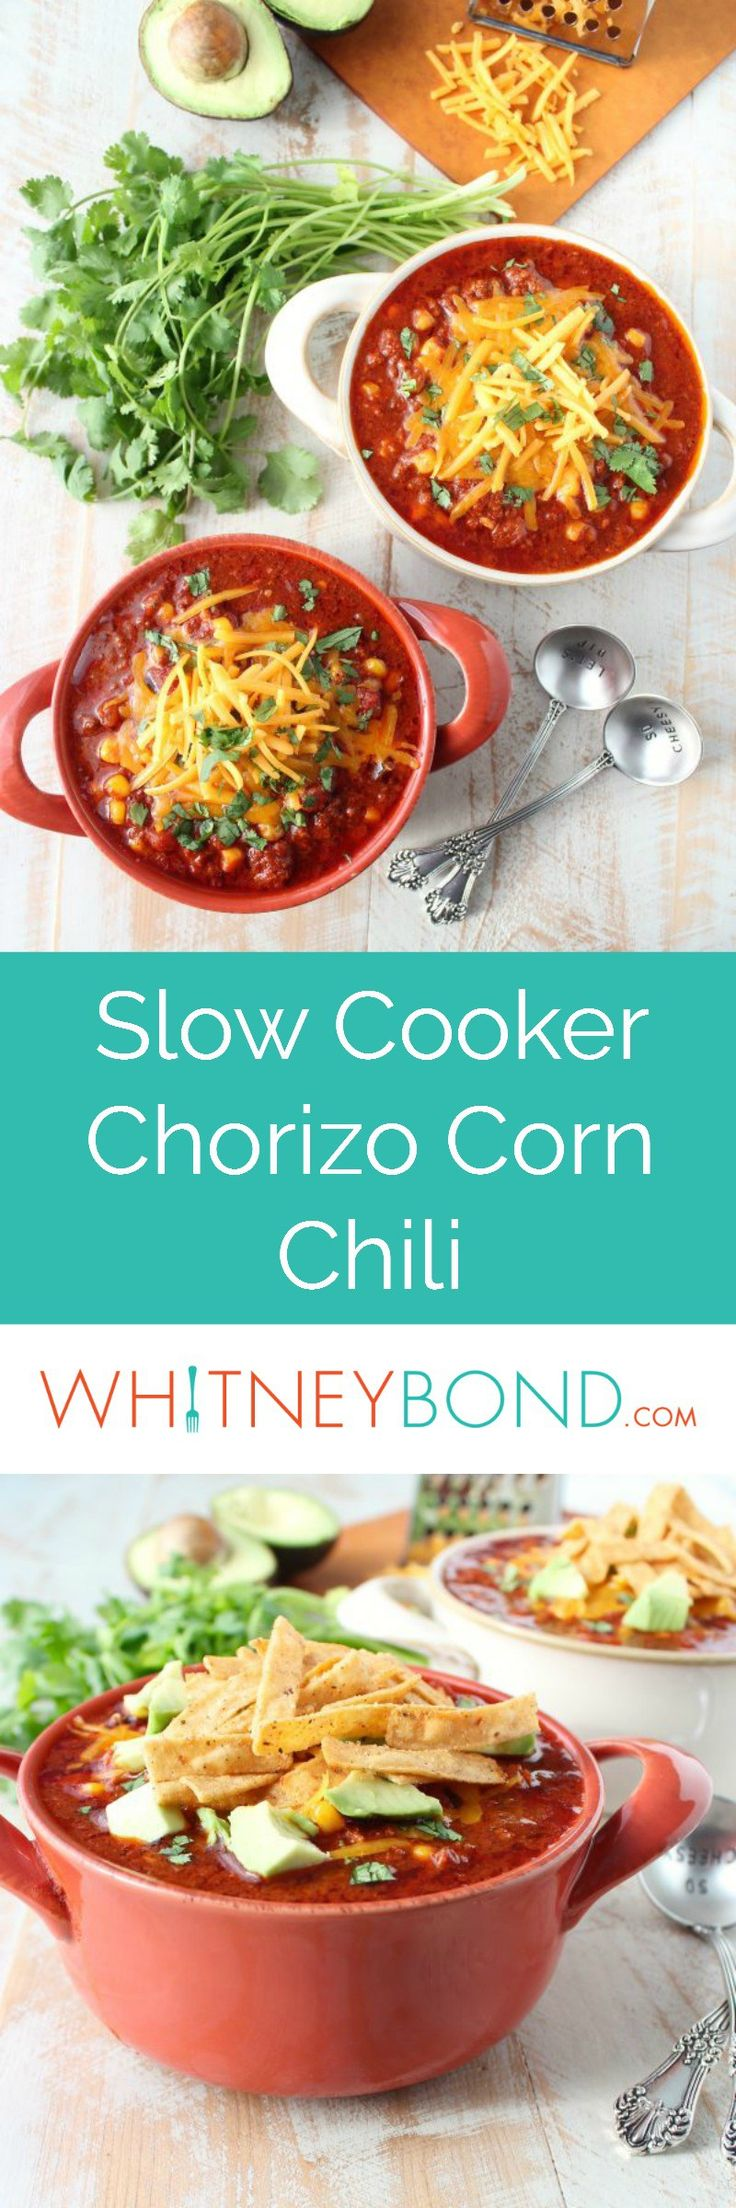 Chorizo sausage & corn chili is a spicy, flavorful slow cooker recipe, easily whipped up with only 15 minutes of prep! Served in @worldmarket crocks. #WorldMarketTribe